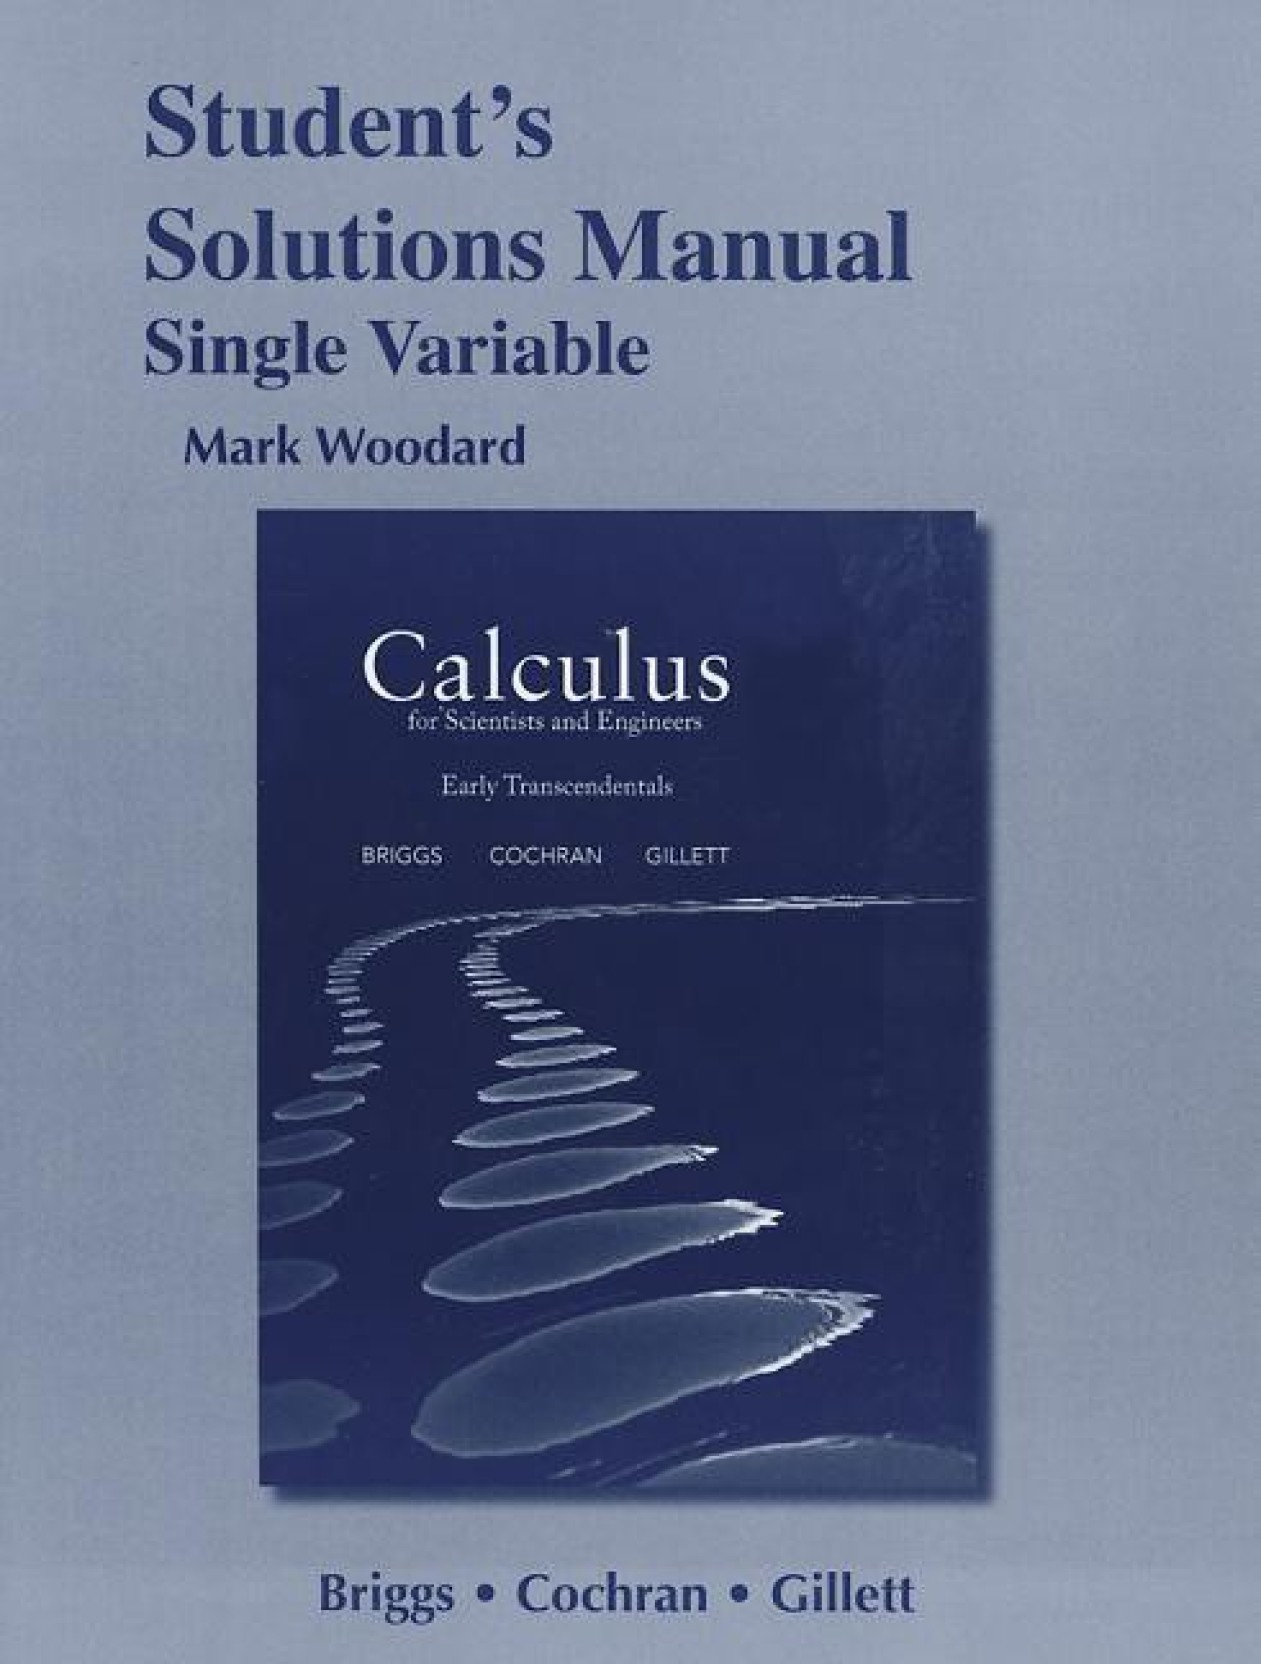 Student Solutions Manual for Calculus for Scientists and Engineers: Early  Transcendentals, Single Variable. Share